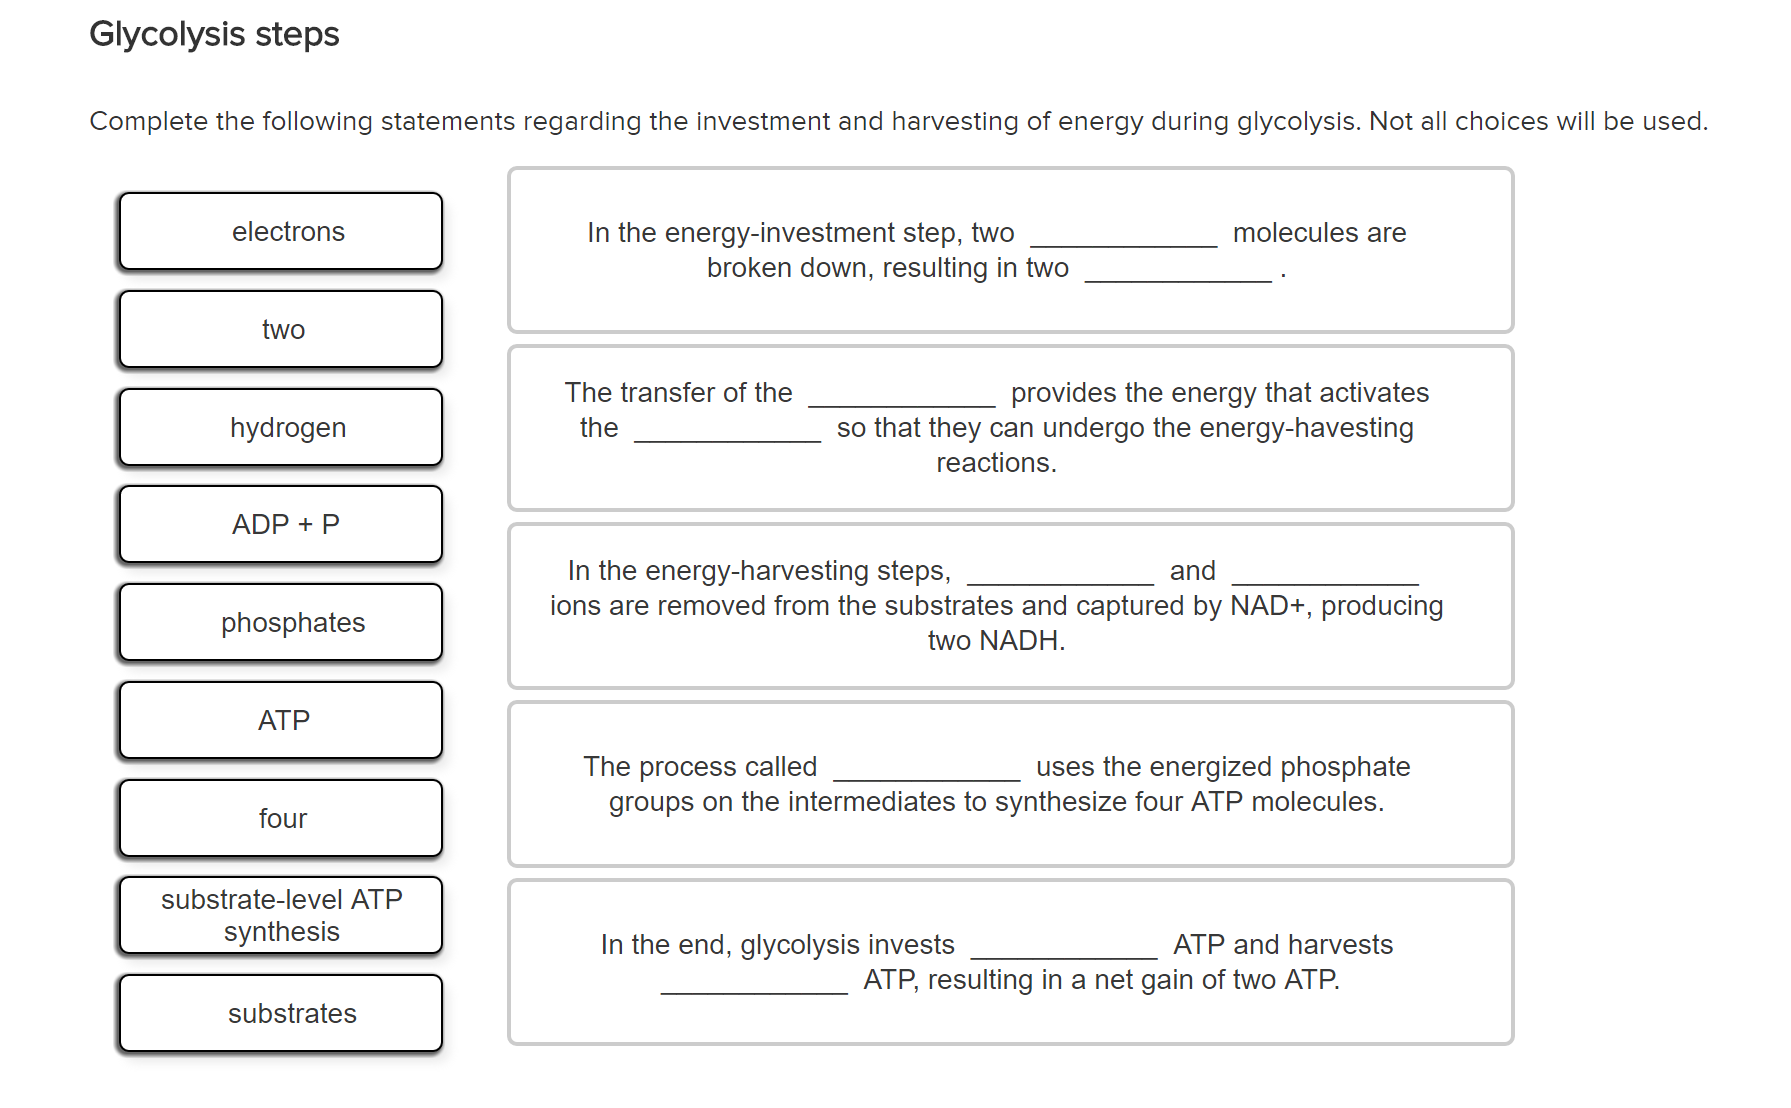 worksheet Cellular Respiration Breaking Down Energy Worksheet Answers solved during cellular respiration the breakdown of rele show transcribed image text releases a great deal that is then used by cell